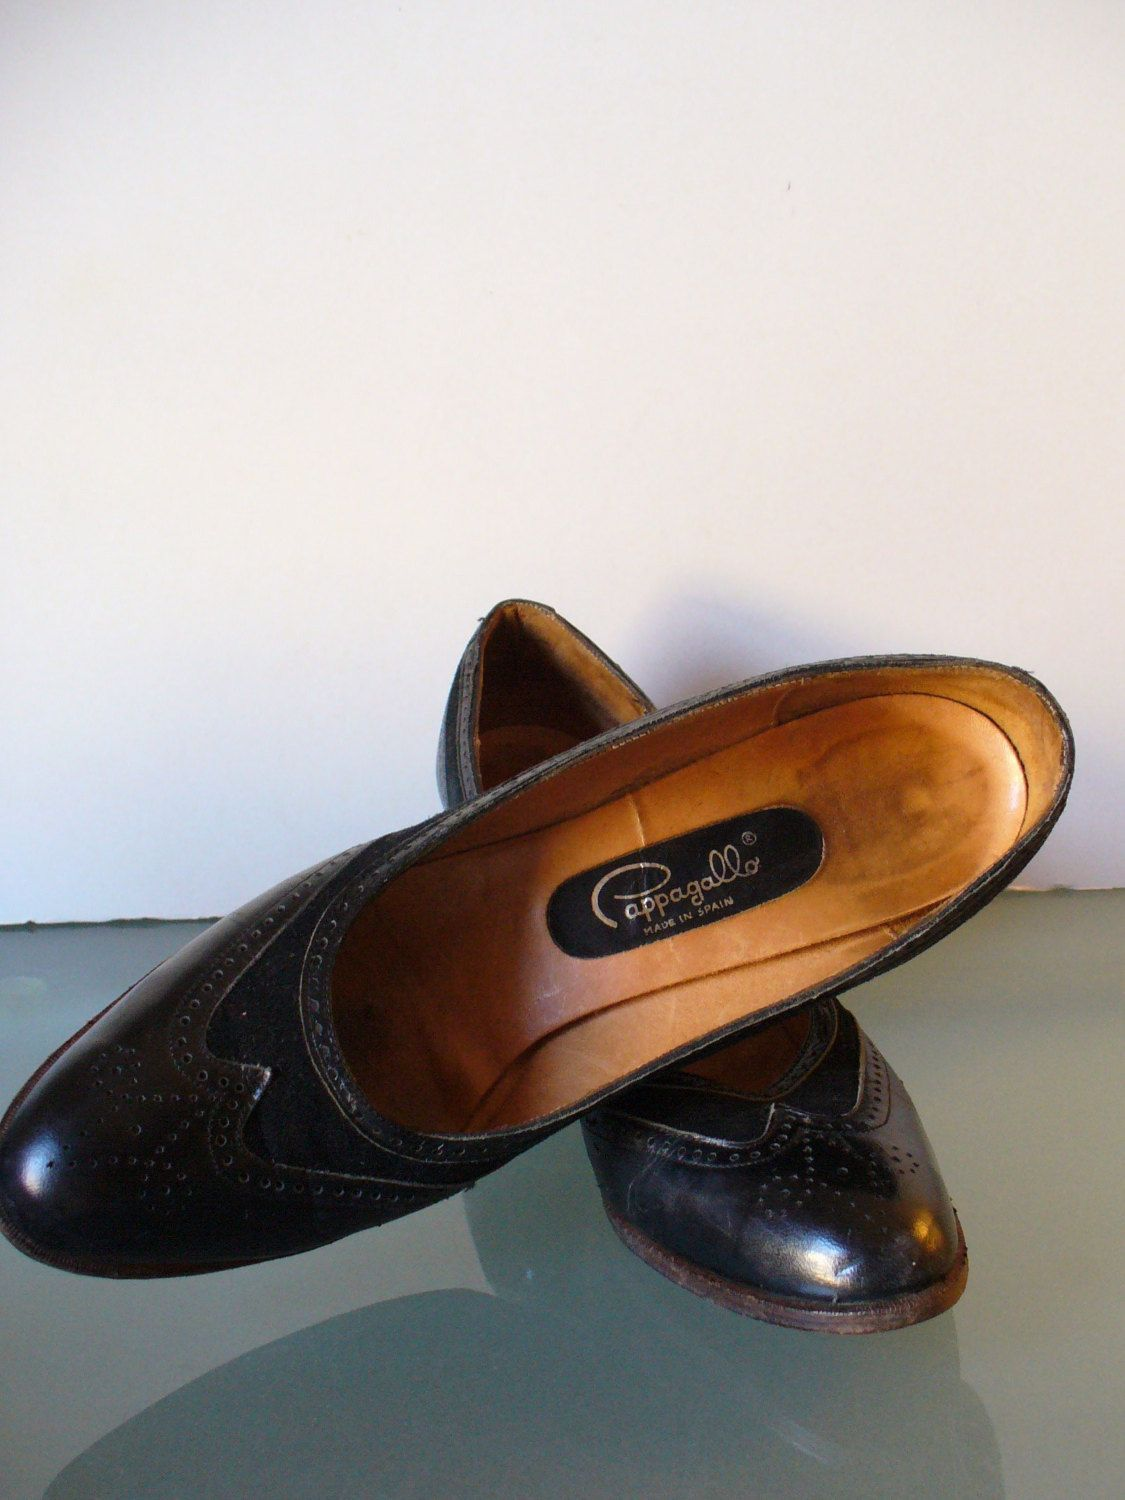 cbb82f821459 Vintage Pappagallo Made in Spain Wingtip Pumps Size 8.5M by TheOldBagOnline  on Etsy